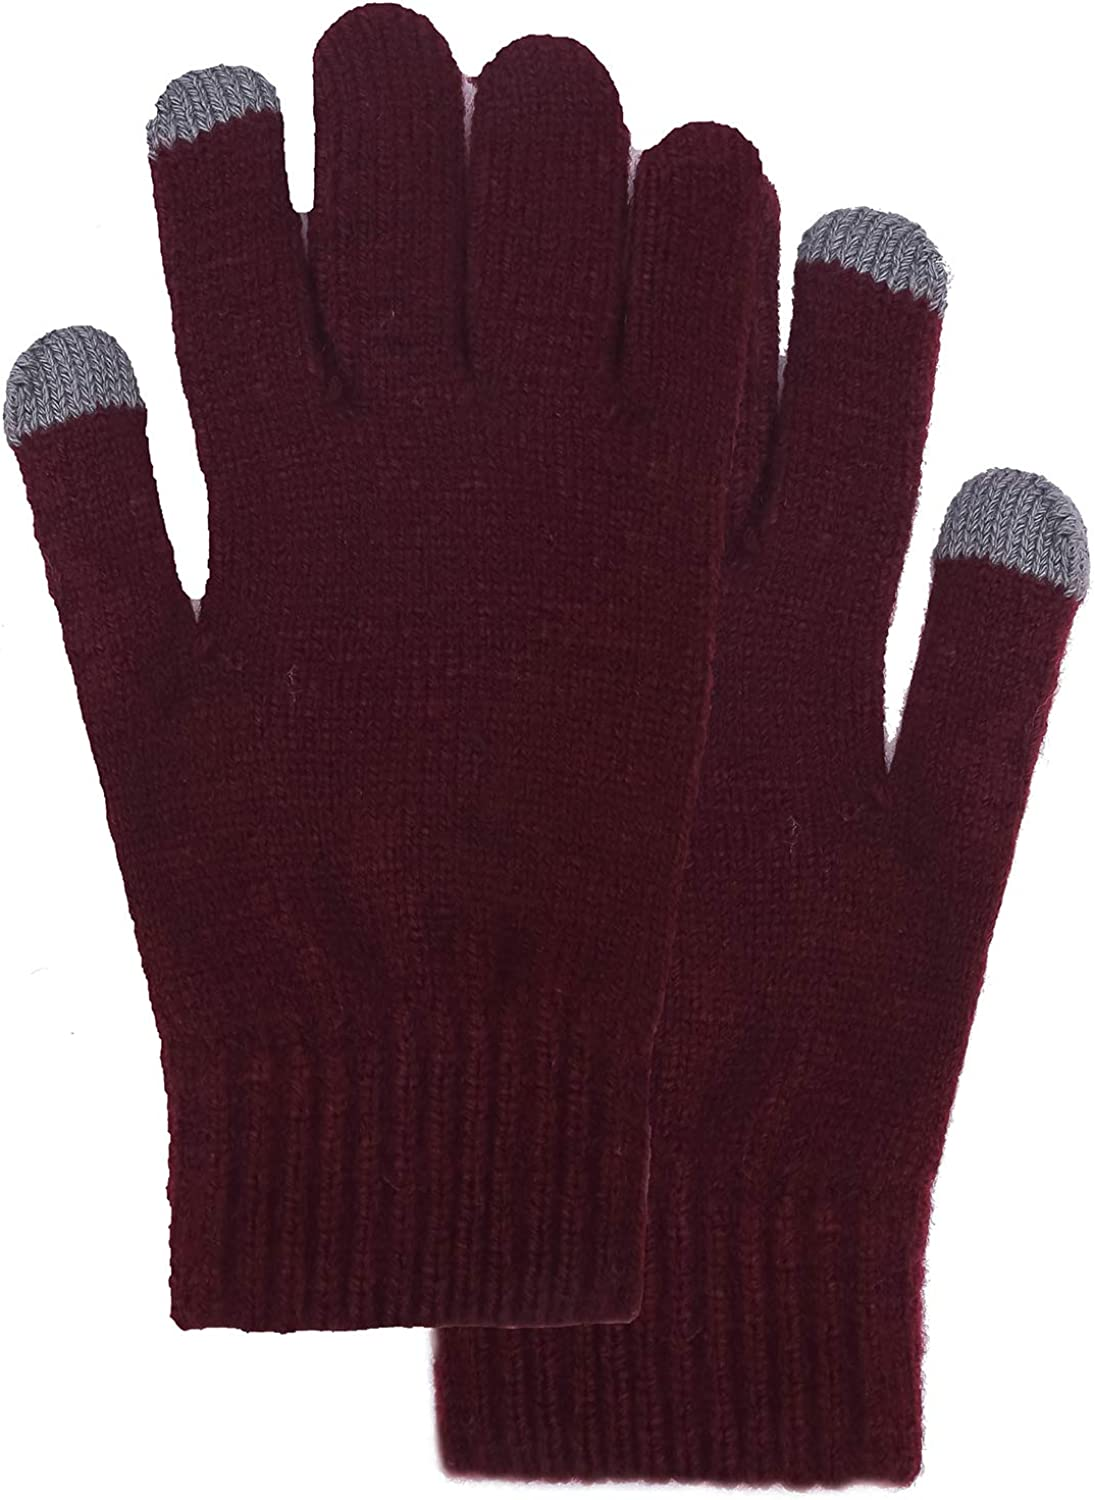 PZLE Touch Screen Gloves...